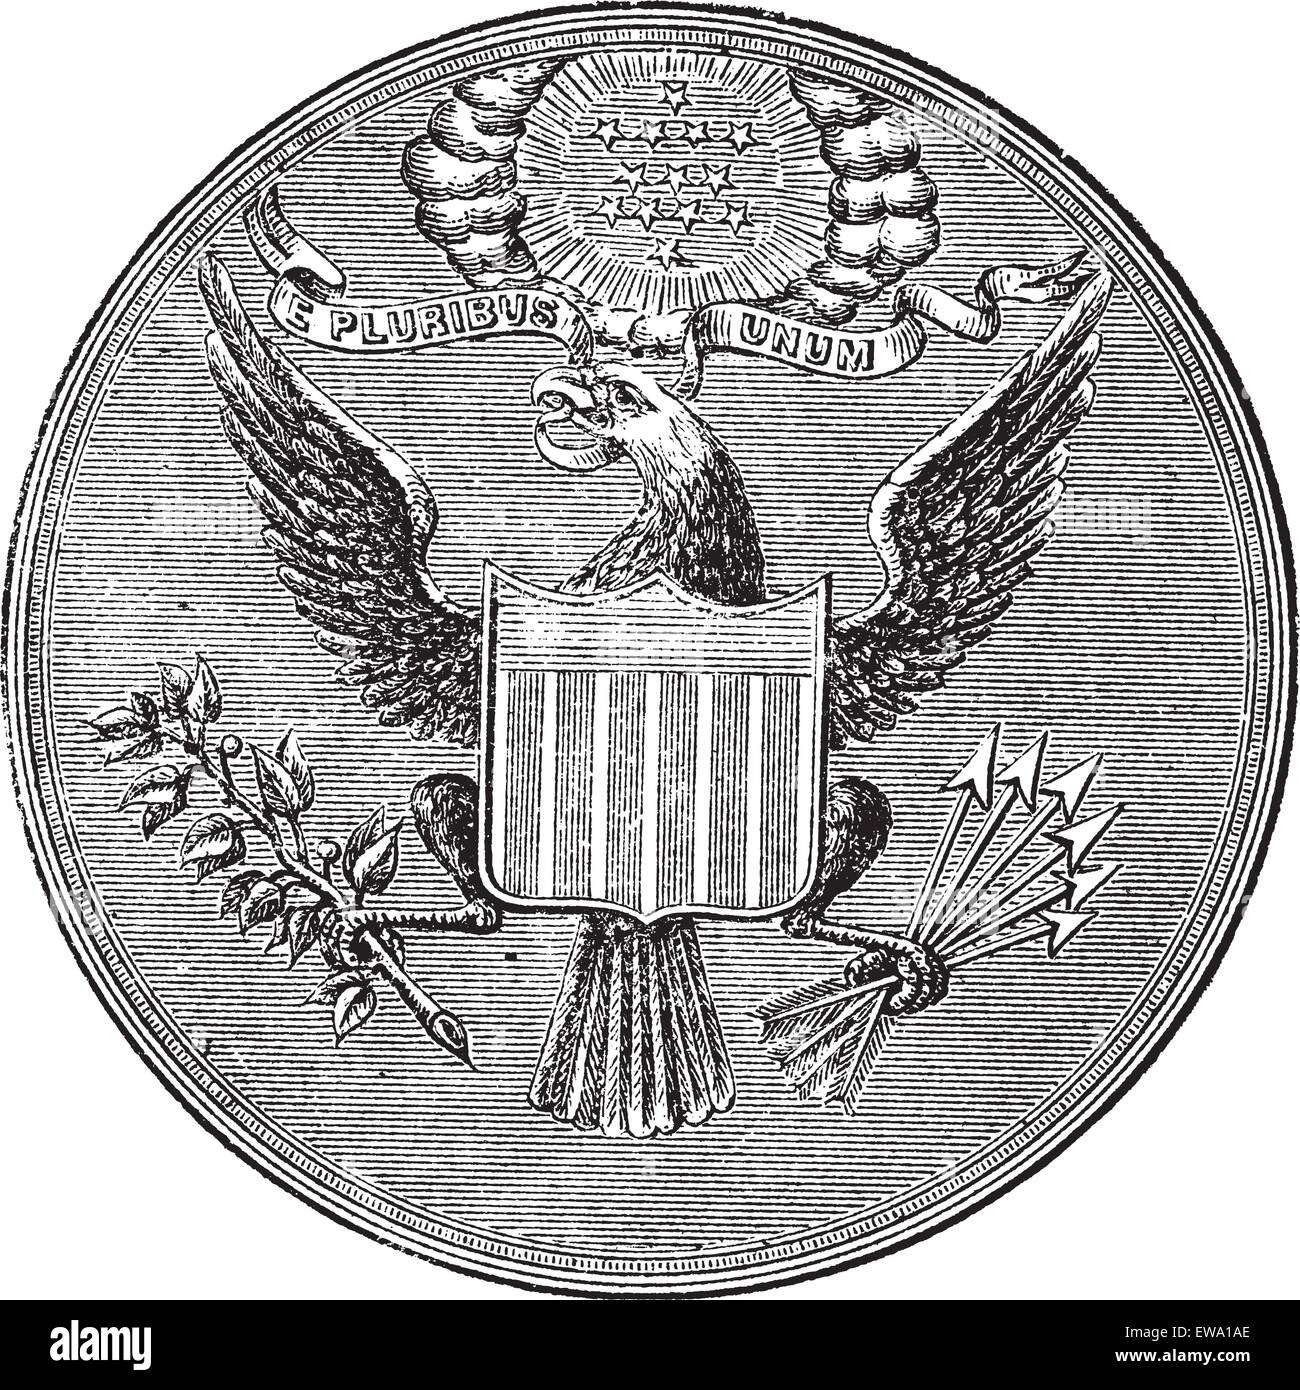 Great Seal of the United States of North America, vintage engraved illustration. Trousset encyclopedia (1886 - 1891). - Stock Image